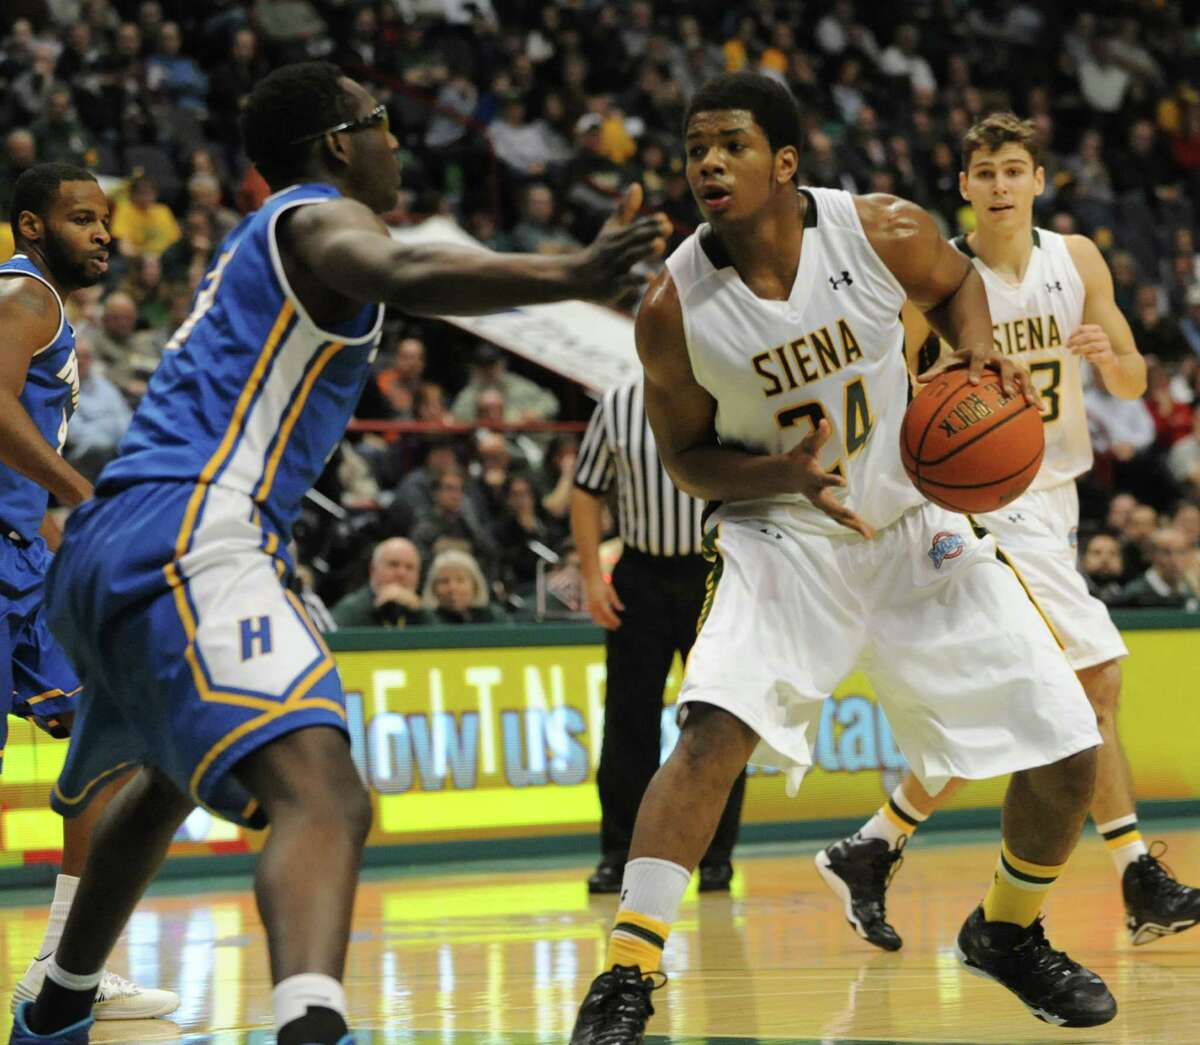 Siena's Lavon Long is guarded by Hofstra's Moussa Kone during a basketball game at the Times Union Center on Monday, Dec. 23, 2013 in Albany, N.Y. (Lori Van Buren / Times Union)